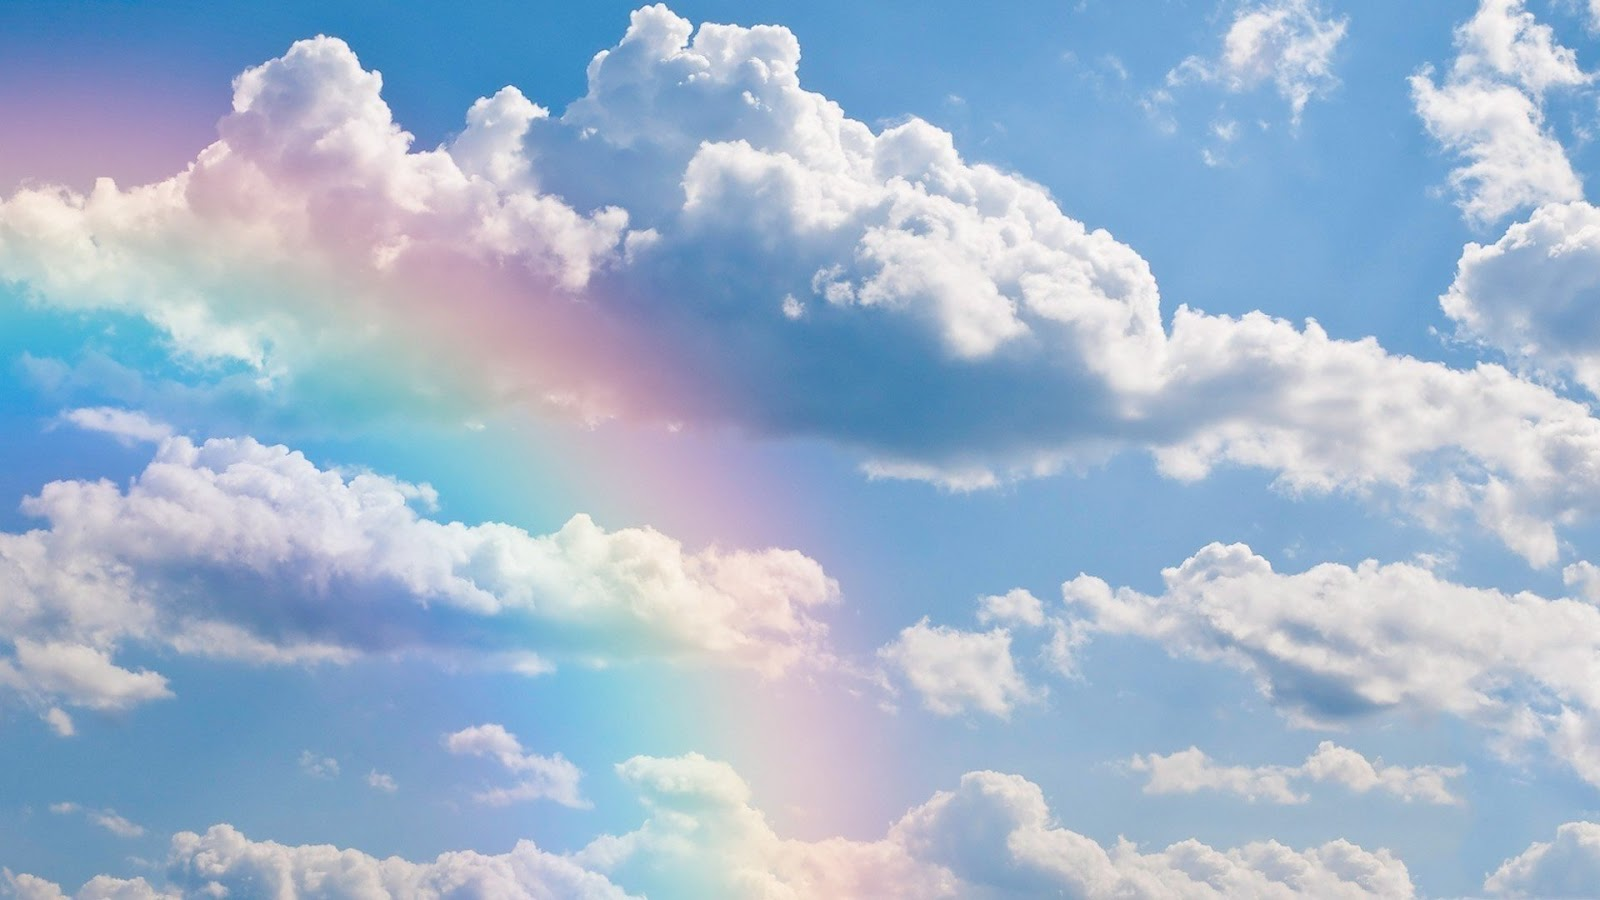 Best 52 Clouds Backgrounds on HipWallpaper Beautiful Clouds 1600x900